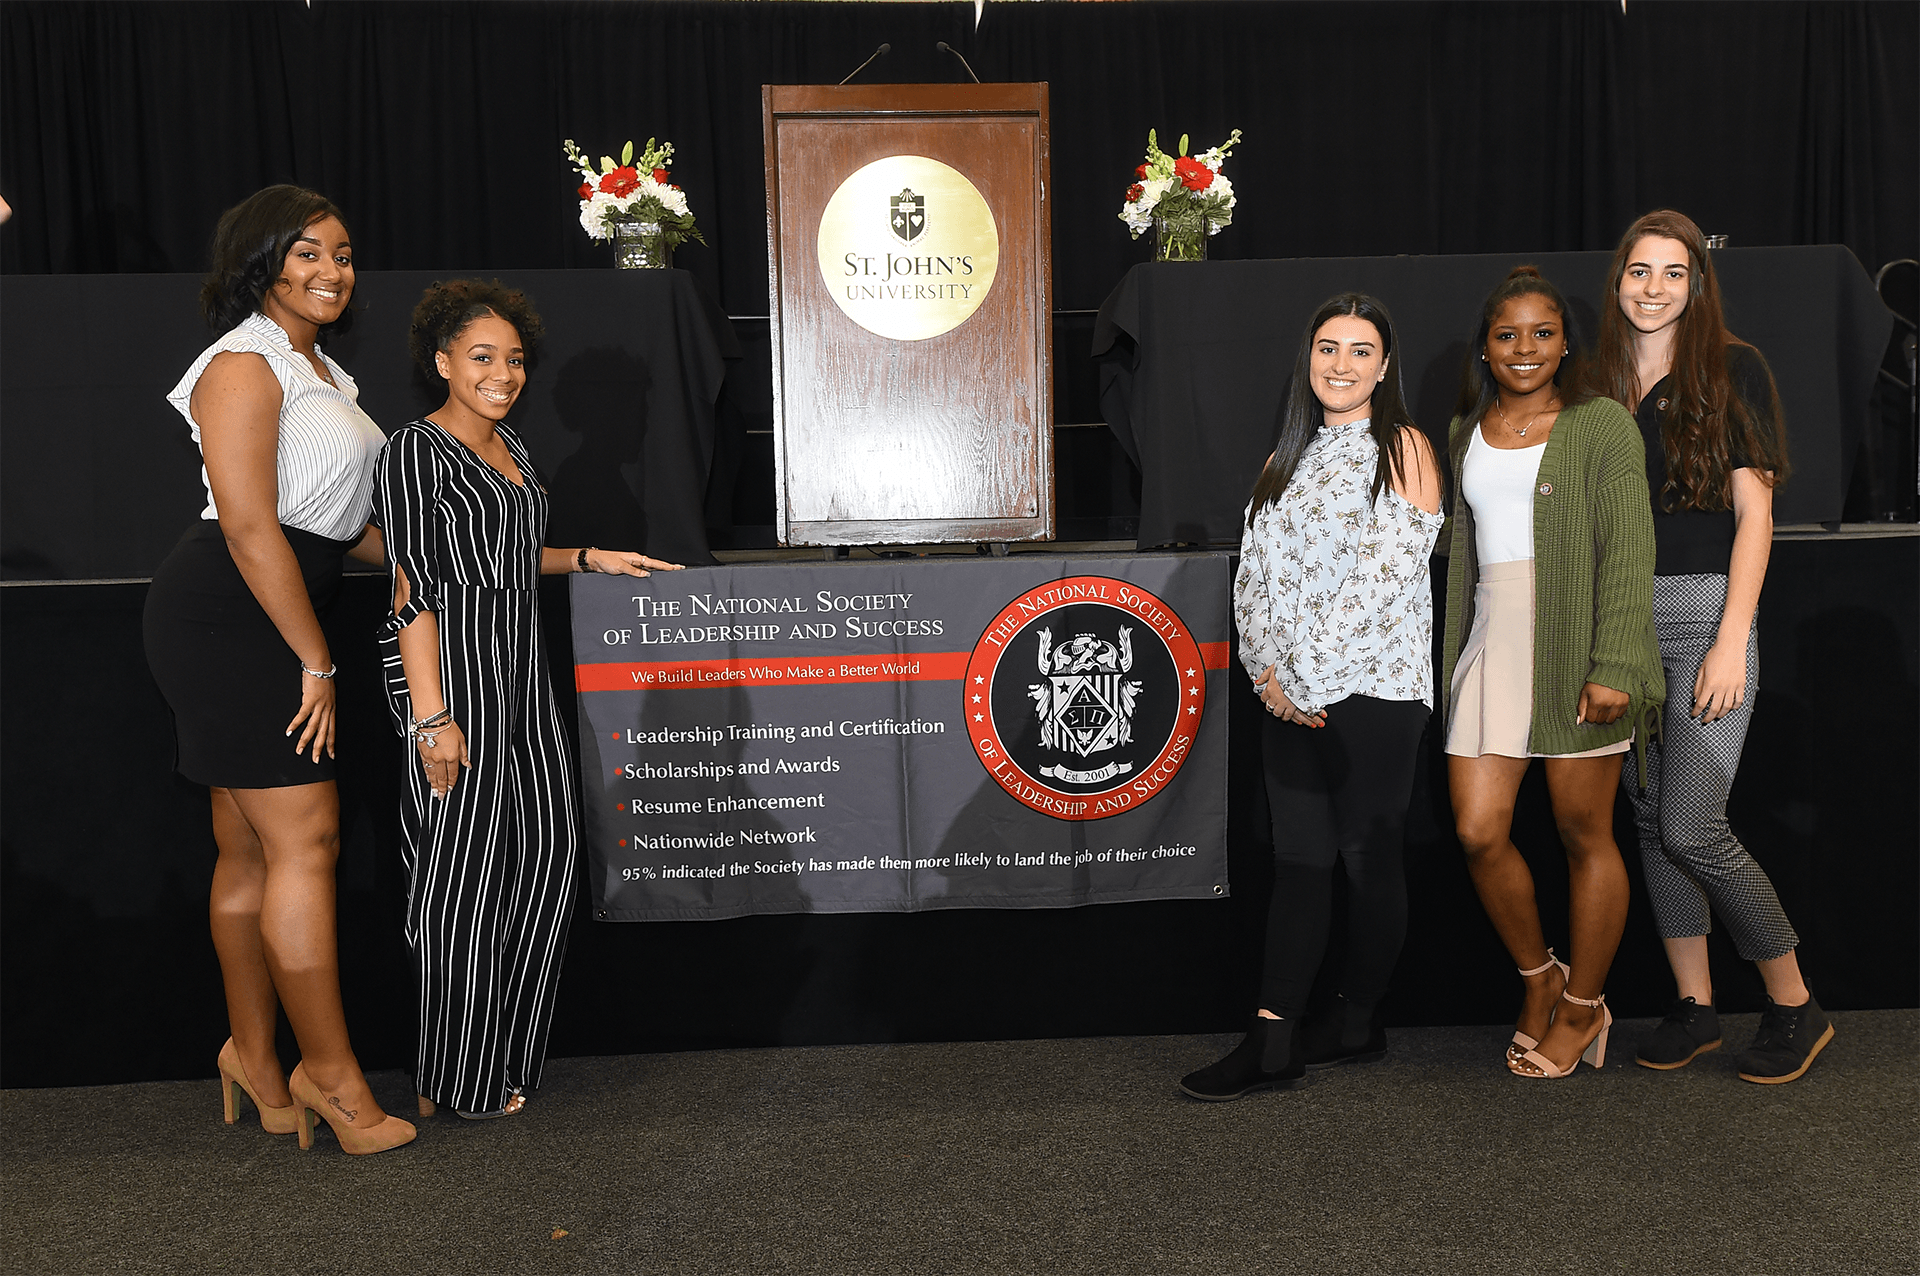 NSLS students posing in front of a banner